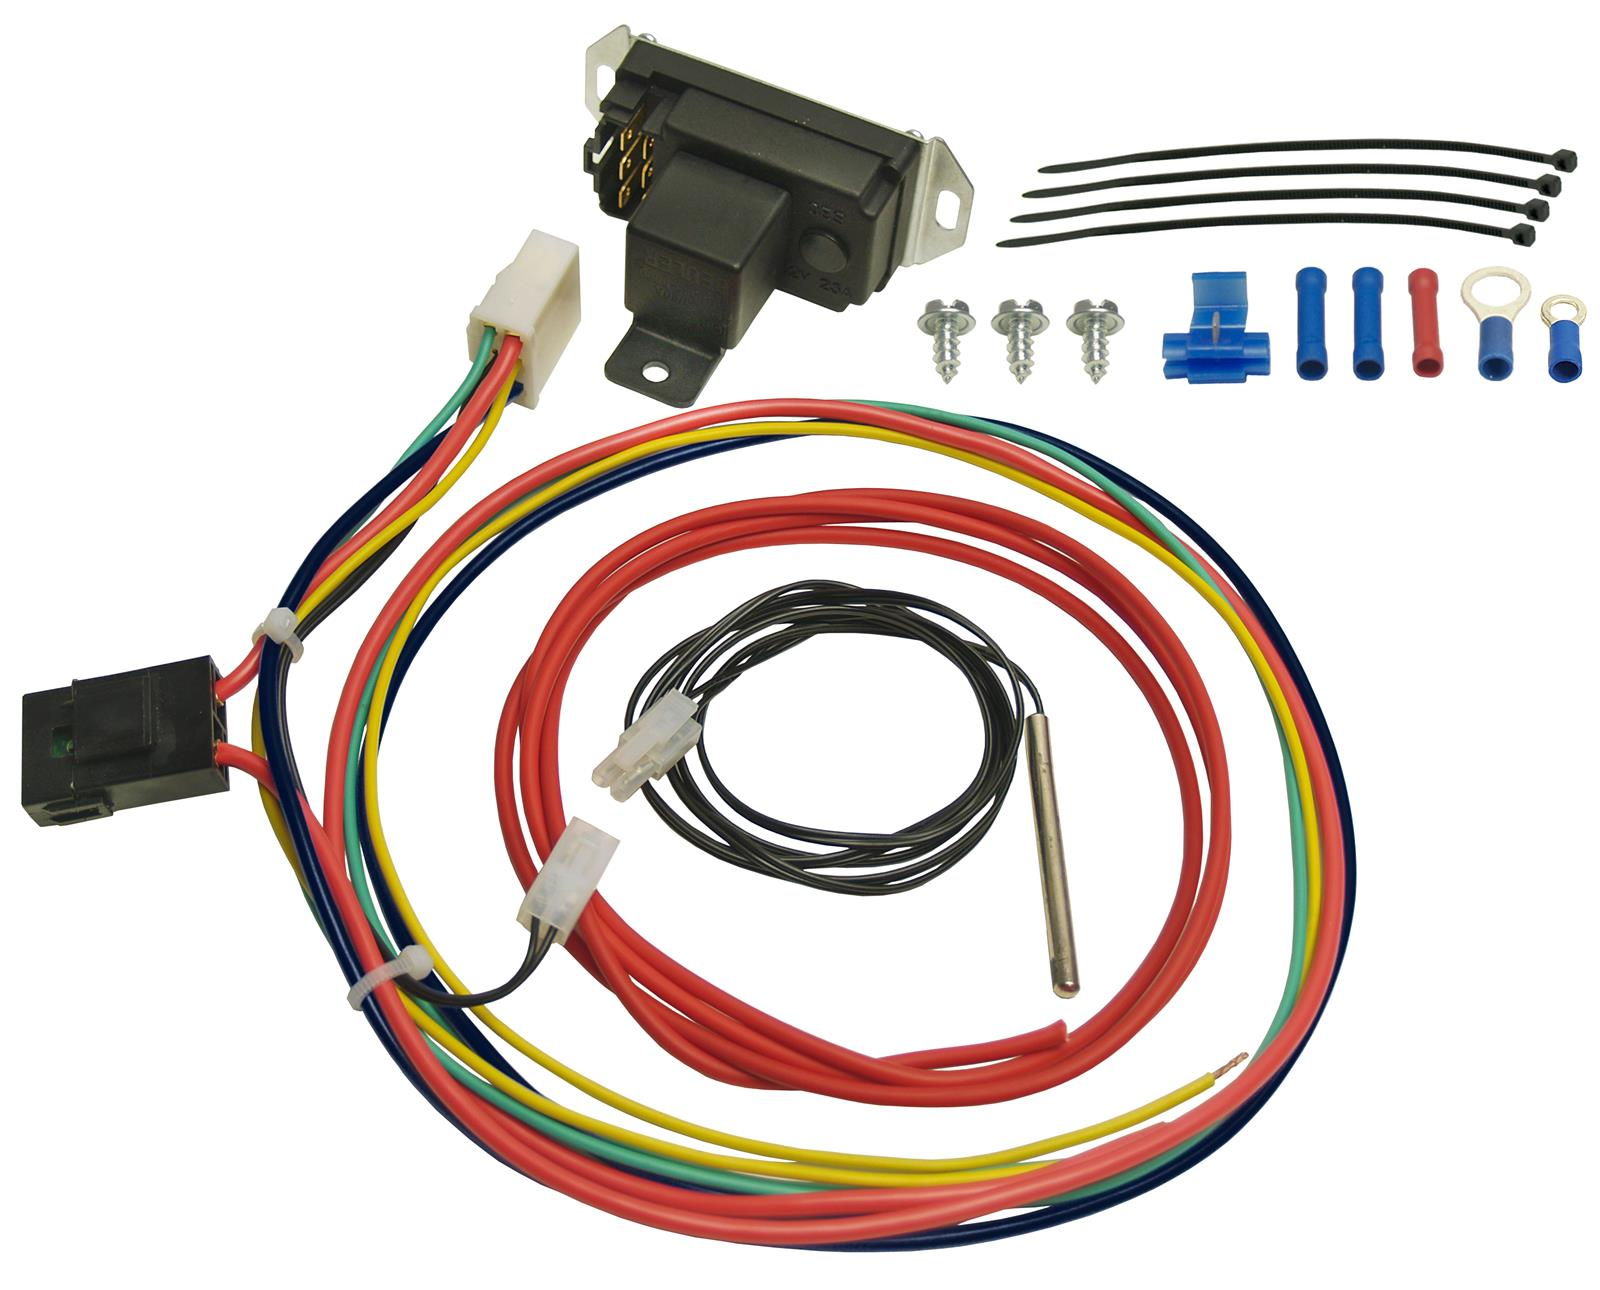 Adjustable Radiator Fan Control Wiring Diagram Electric Fans Derale Deluxe Controllers With Probes 16759 Rh Summitracing Com 2008 F450 Coolant Cooling